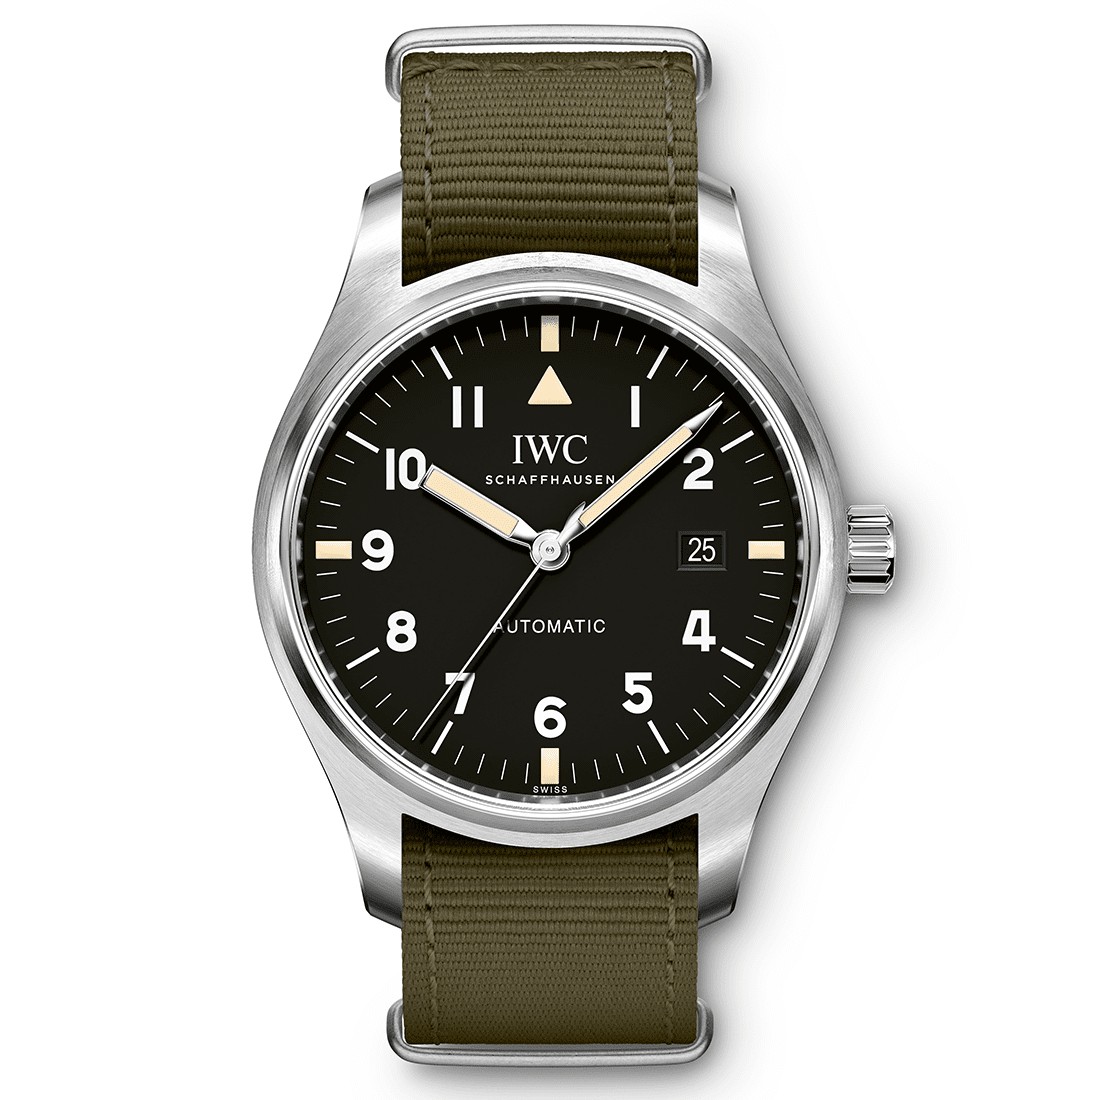 iwc_front